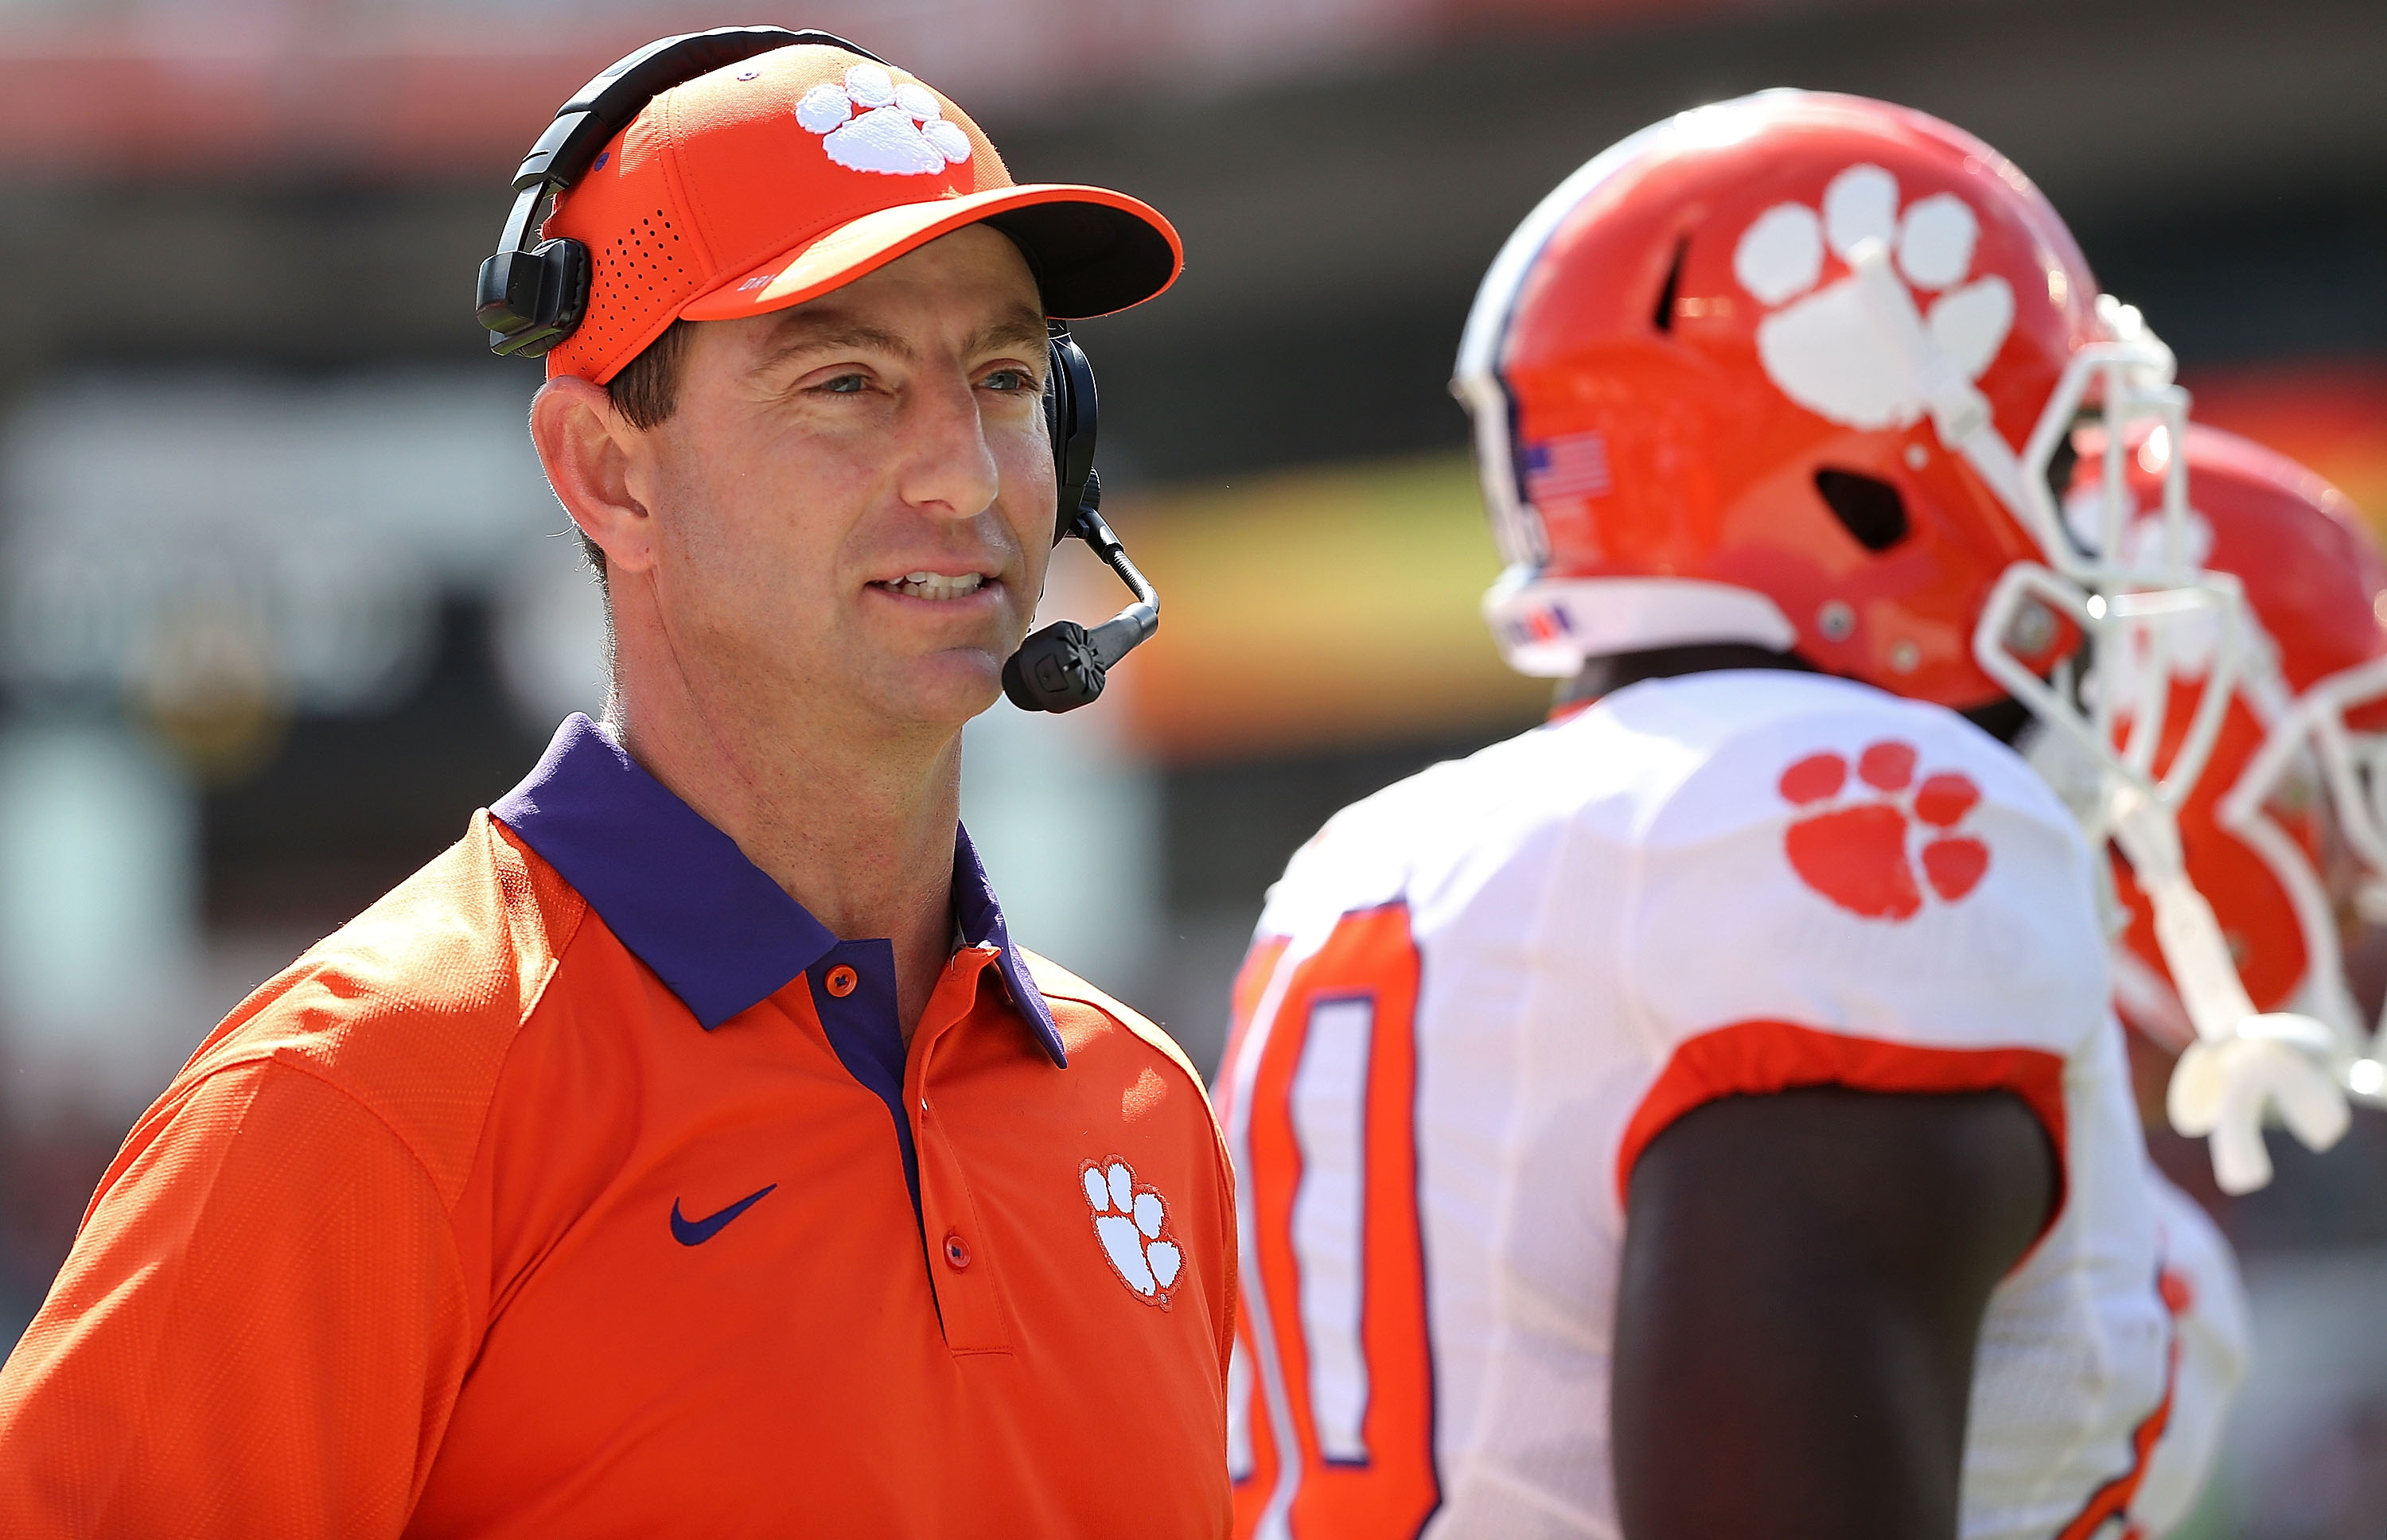 Dabo Swinney of the Clemson Tigers during a game in Miami Gardens, FL on Oct. 24, 2015.